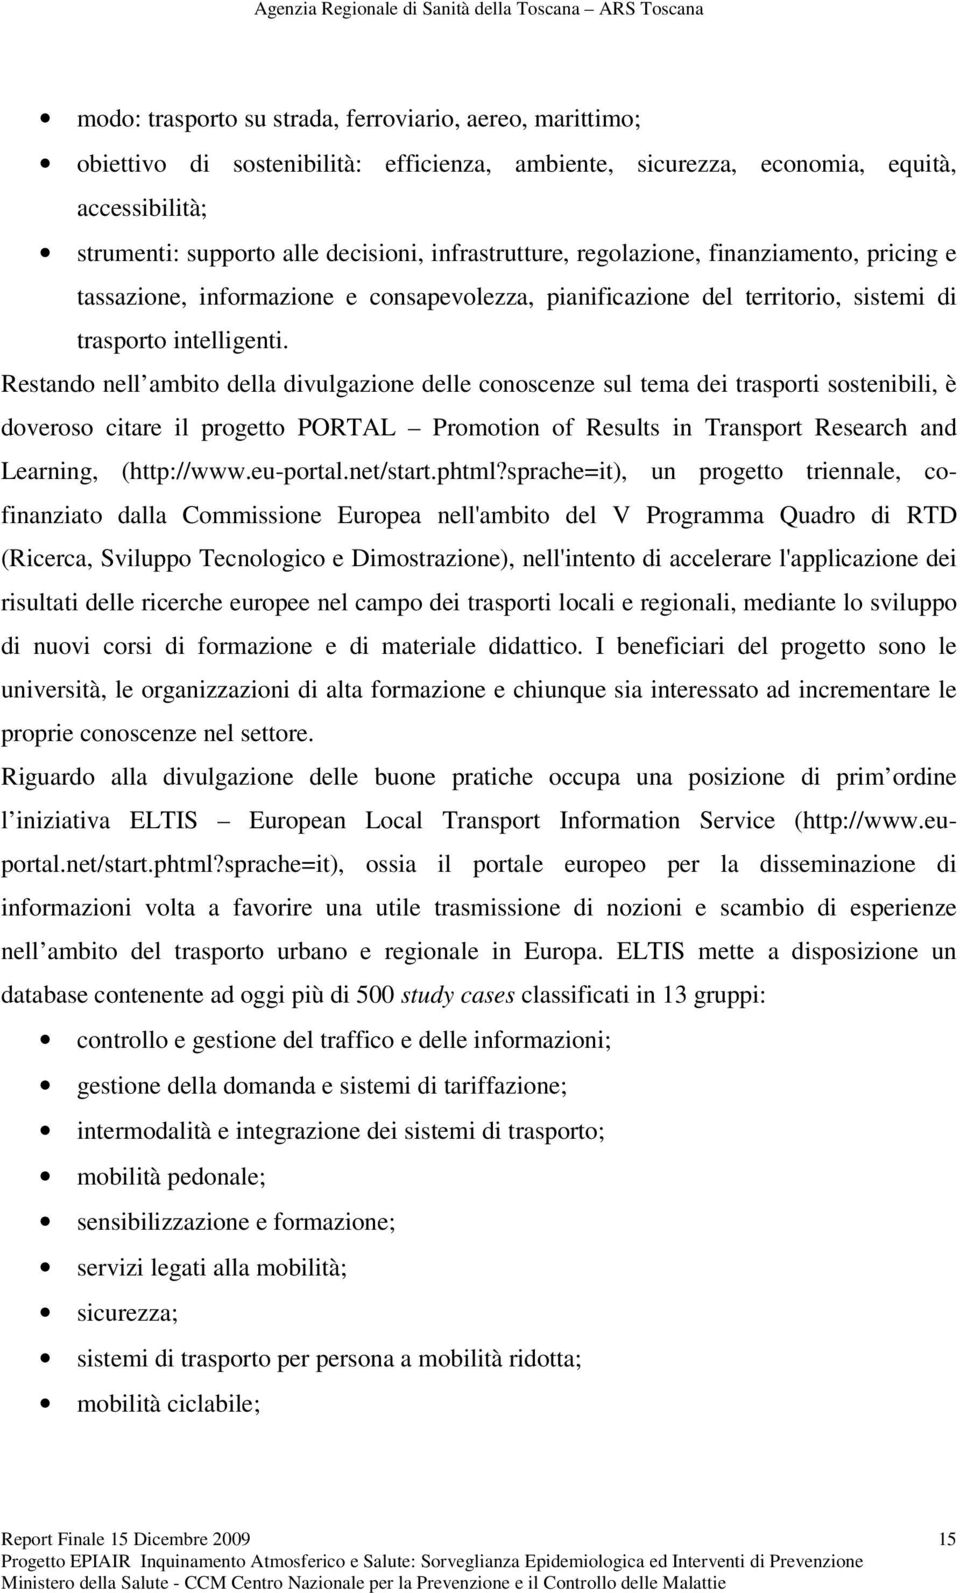 Restando nell ambito della divulgazione delle conoscenze sul tema dei trasporti sostenibili, è doveroso citare il progetto PORTAL Promotion of Results in Transport Research and Learning, (http://www.